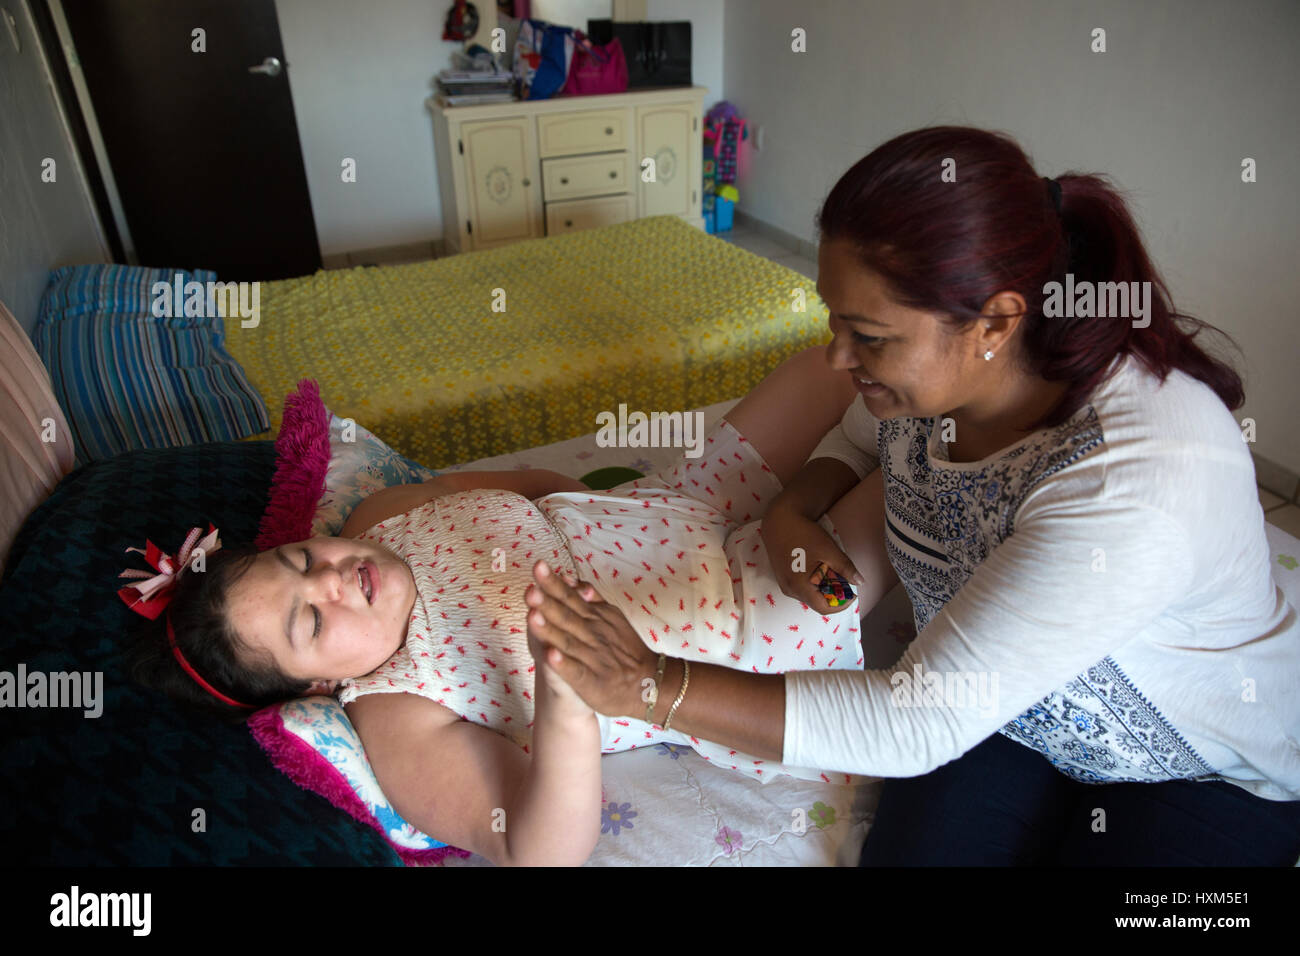 Ana Ximena Navarro (L) is pictured playing with her aunt Gabriela Rios Ballesteros (R), at her home in Guadalajara, - Stock Image